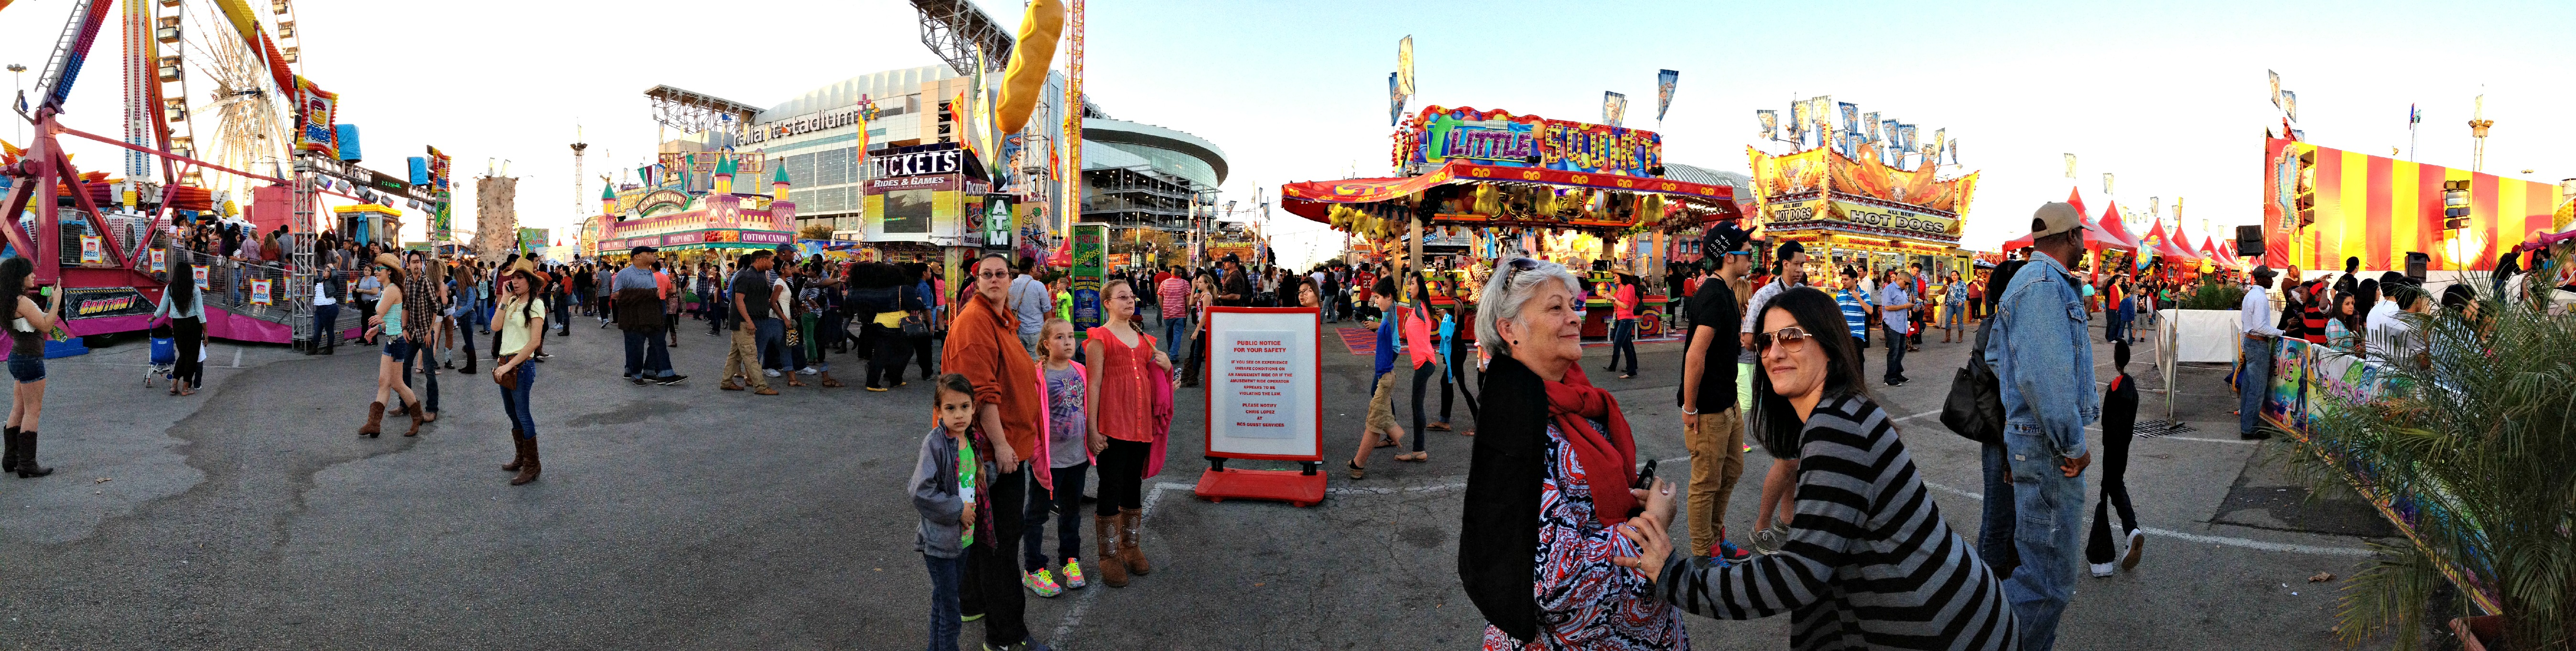 Panoramic of the carnival